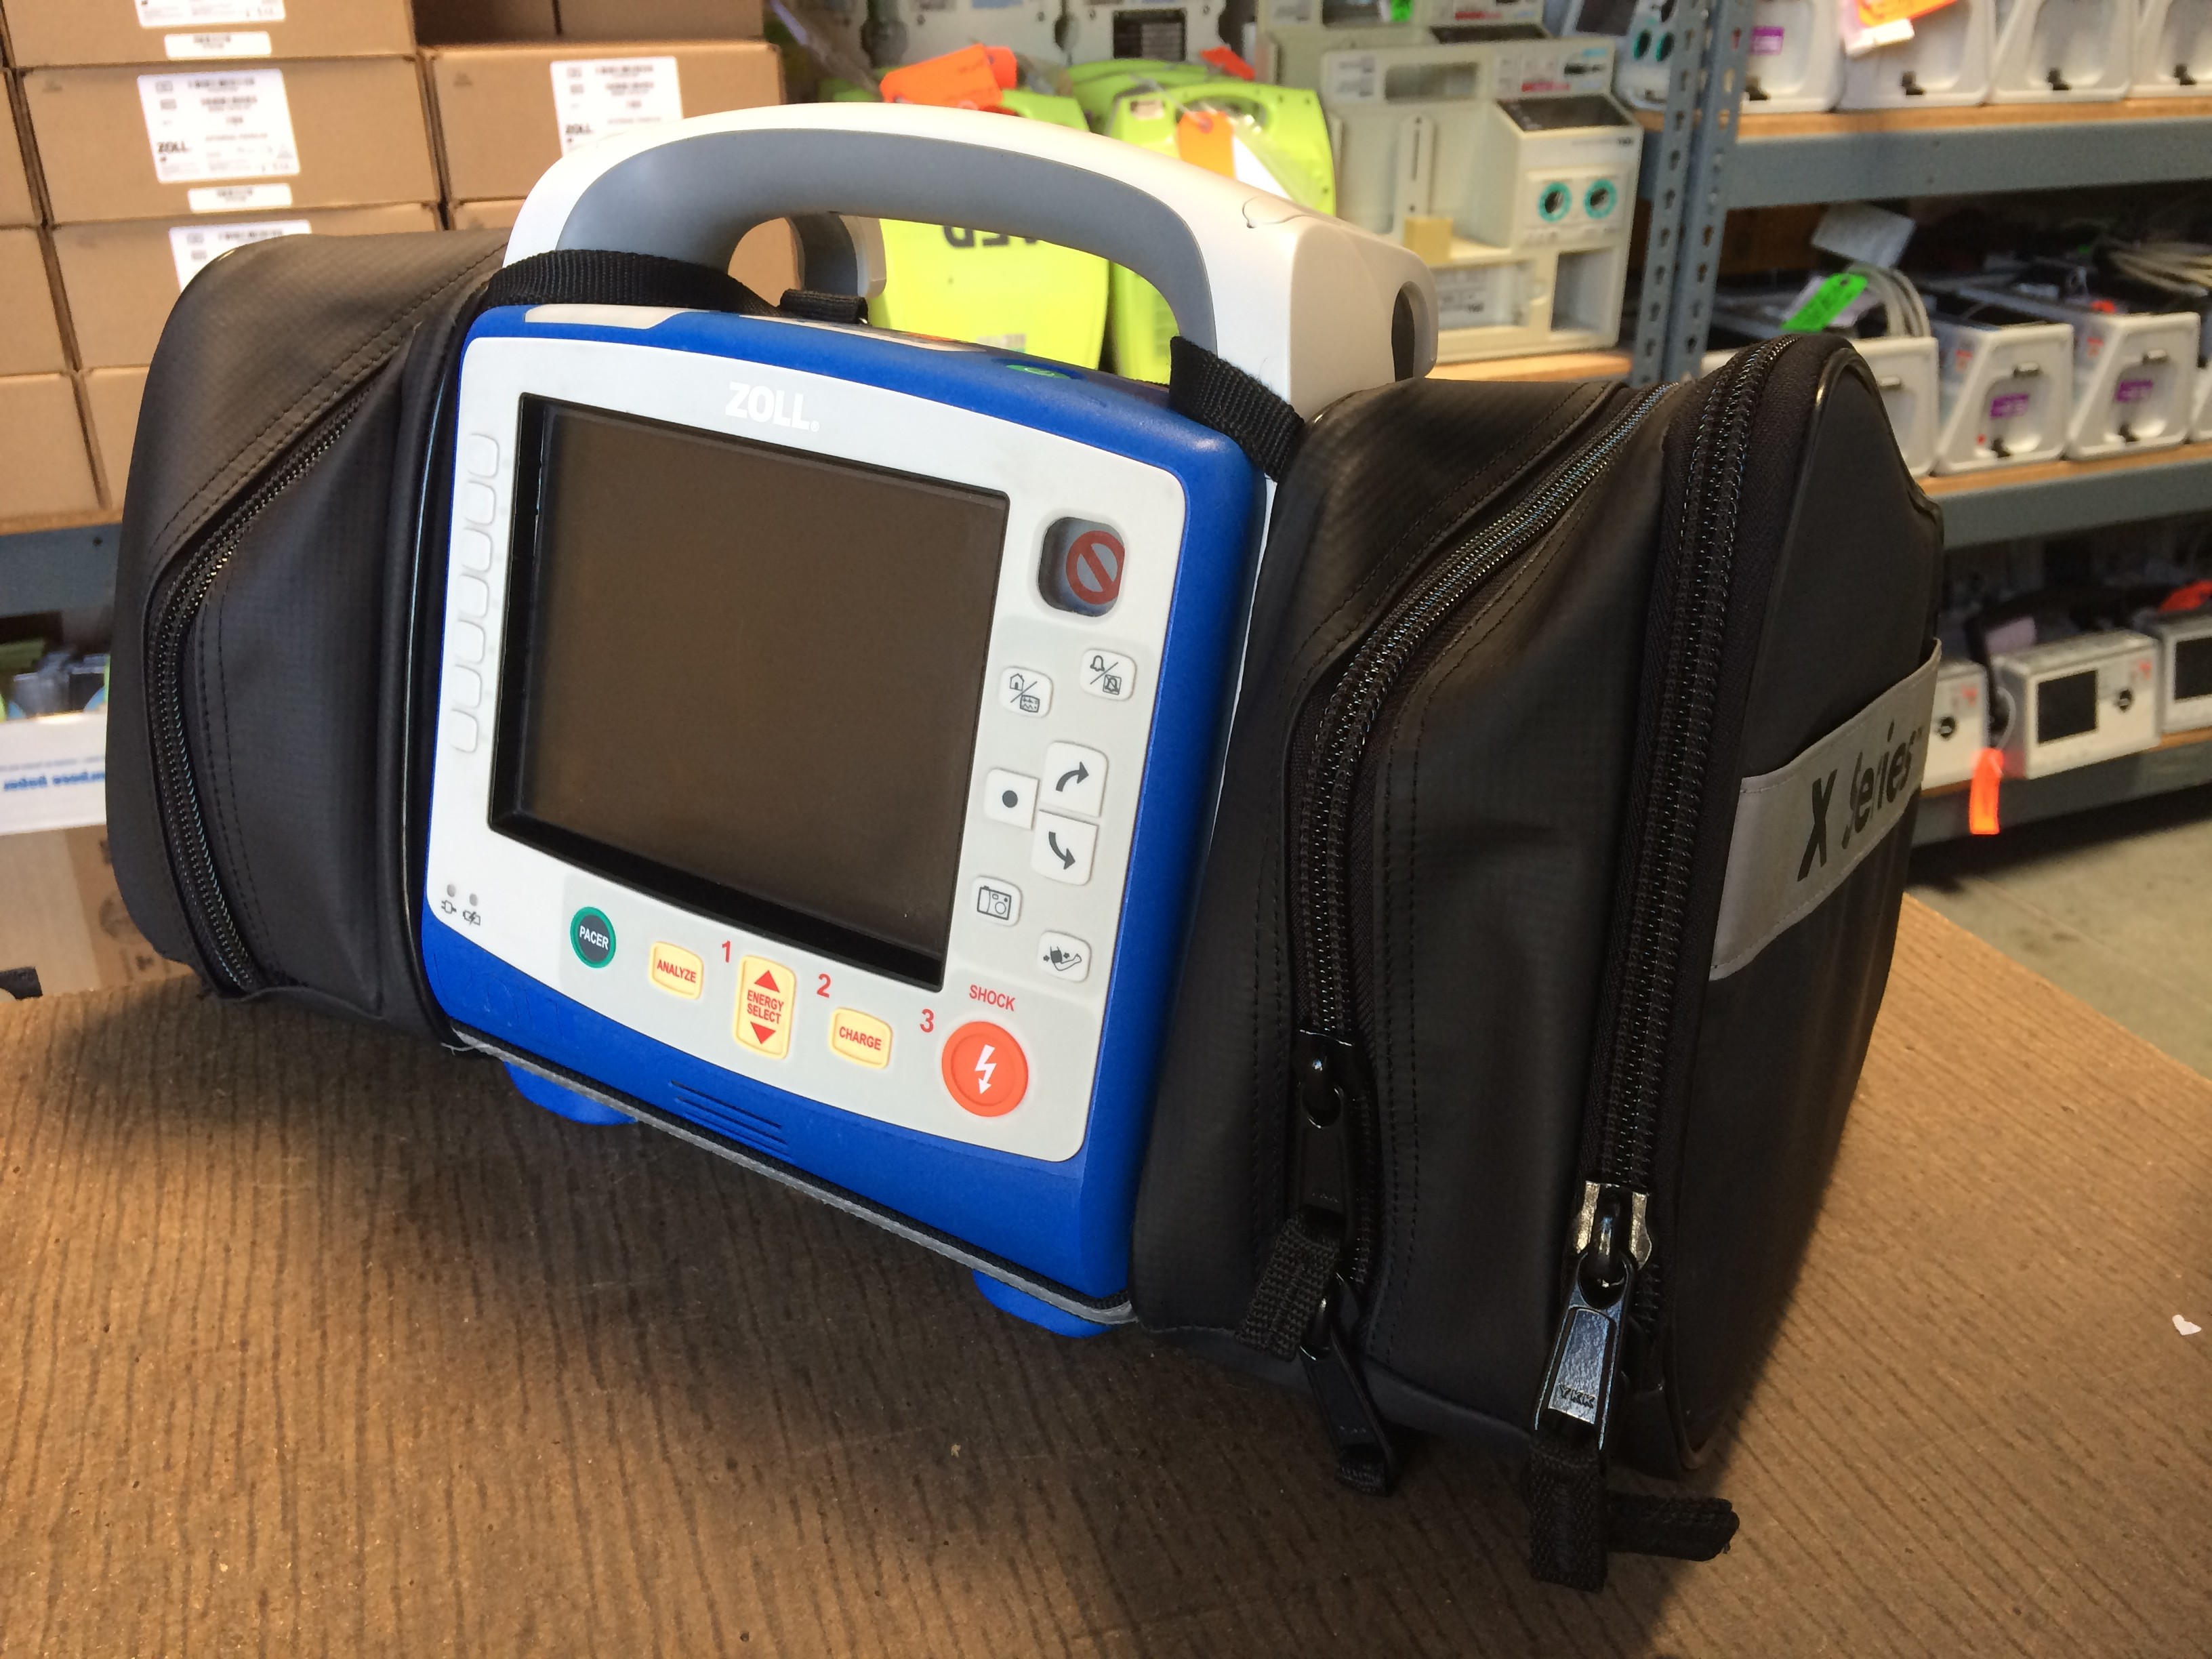 Fully loaded Zoll X series shipping to one of our customers. This is the newest defibrillator model from Zoll. Light and compact to meet the needs of EMS providers.